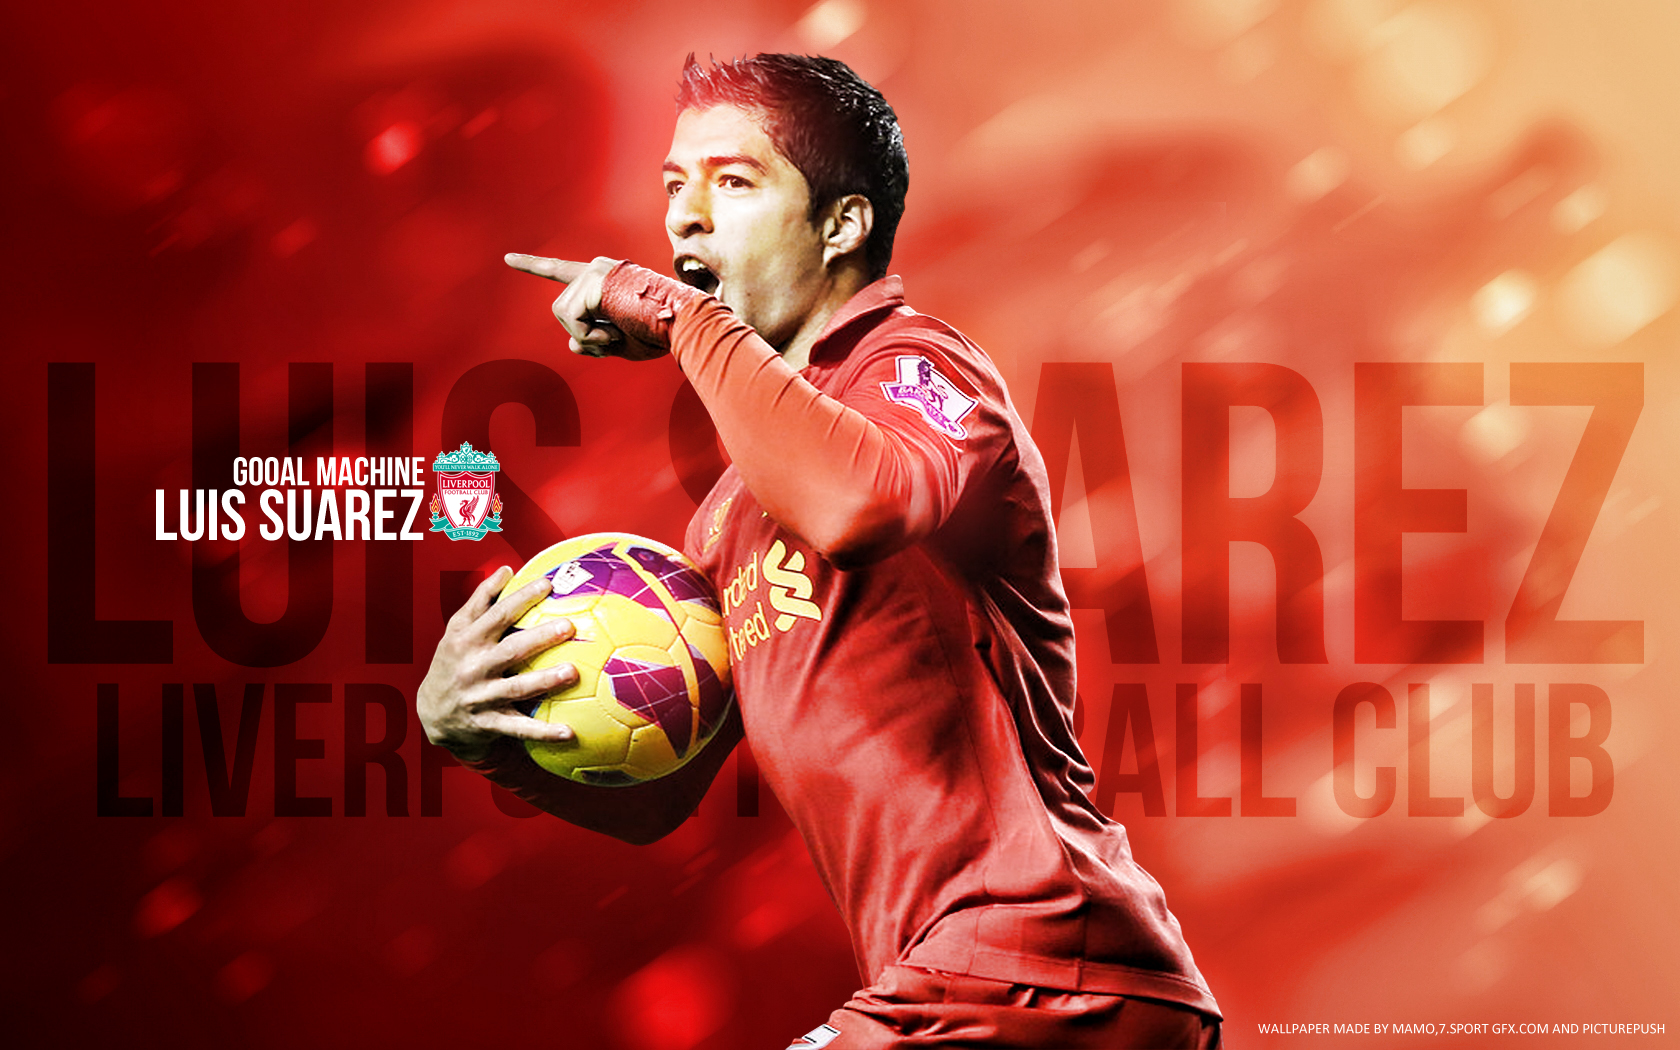 Luis Suarez Wallpaper   Football Wallpaper HD Football Picture HD 1680x1050